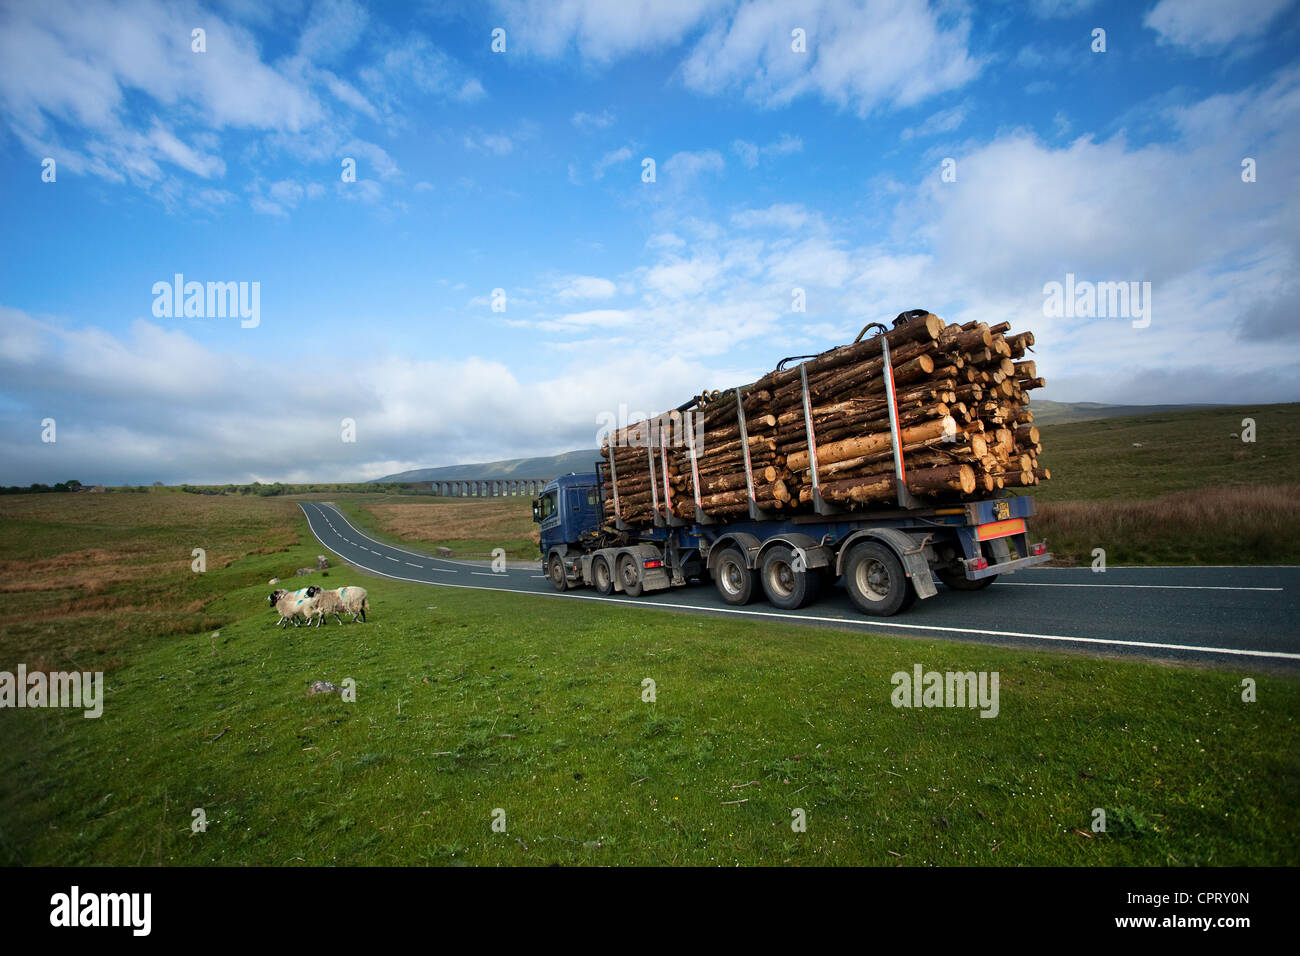 Scania Log Transport Lorry _ Trucking Timber to Ribblehead Rail Link, North Yorkshire Dales, UK - Stock Image